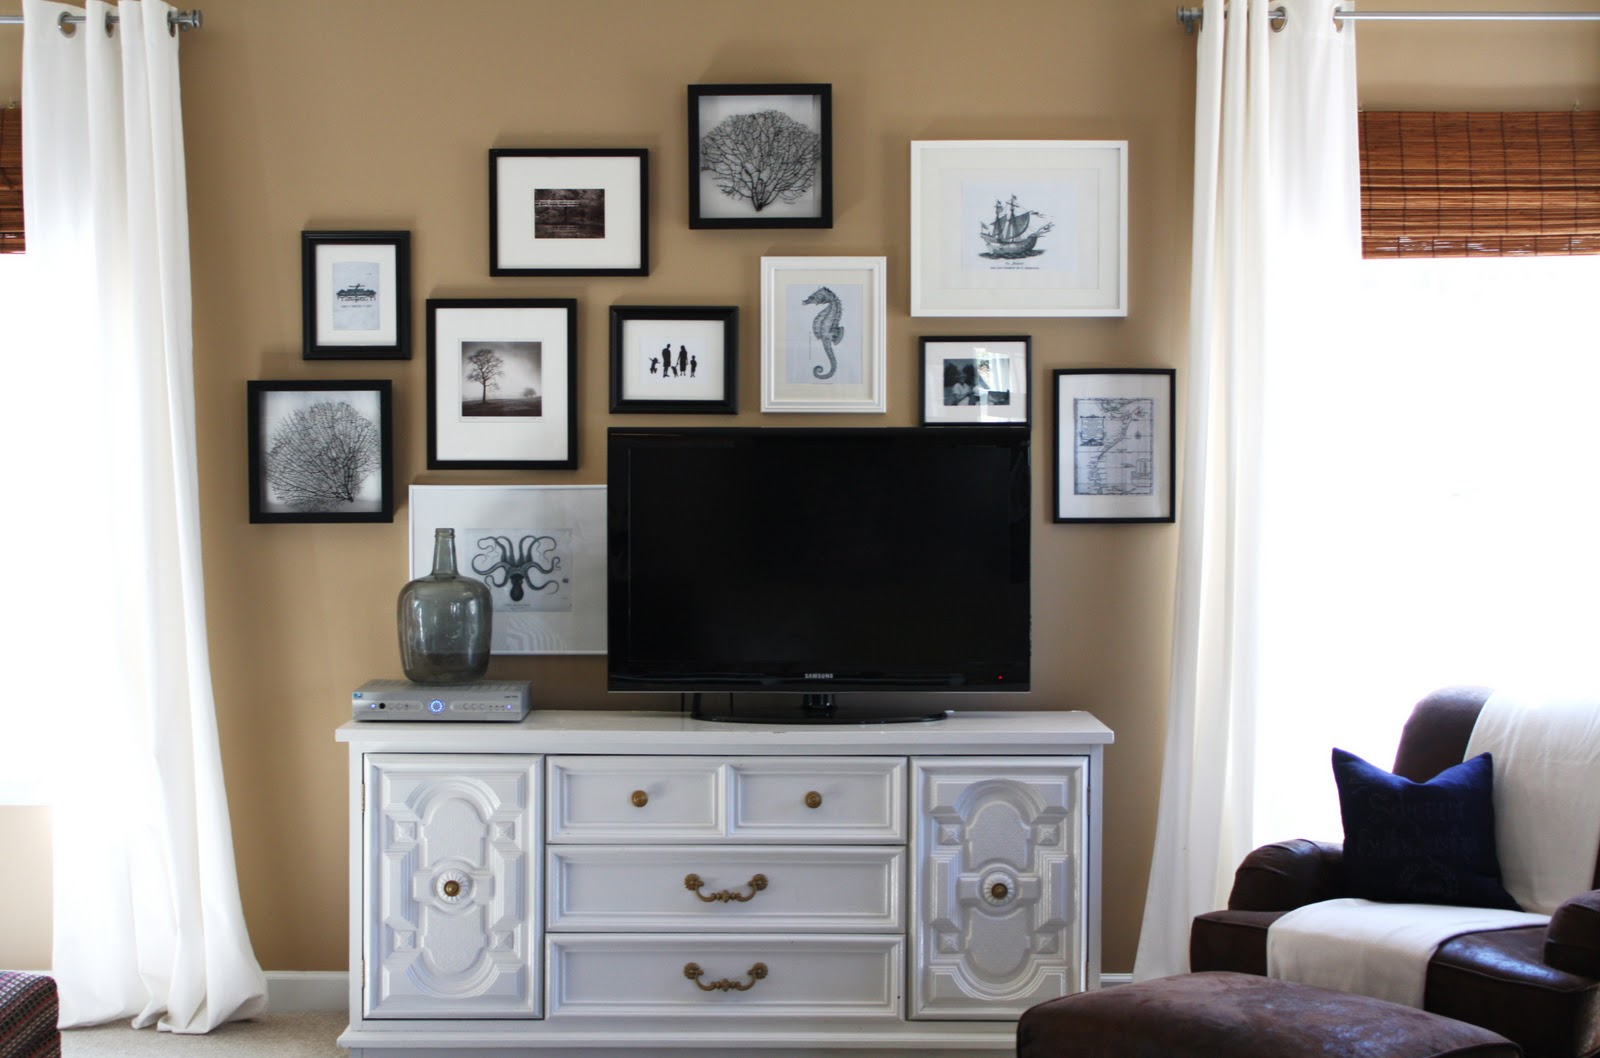 Emily Clark Design Hereu0027s a great ex&le by Emily Clark designer and blogger. By using a grouping of black and white framed art the flat screen becomes ... & Lisa Mende Design: How to Decorate Around a Flat Screen TV